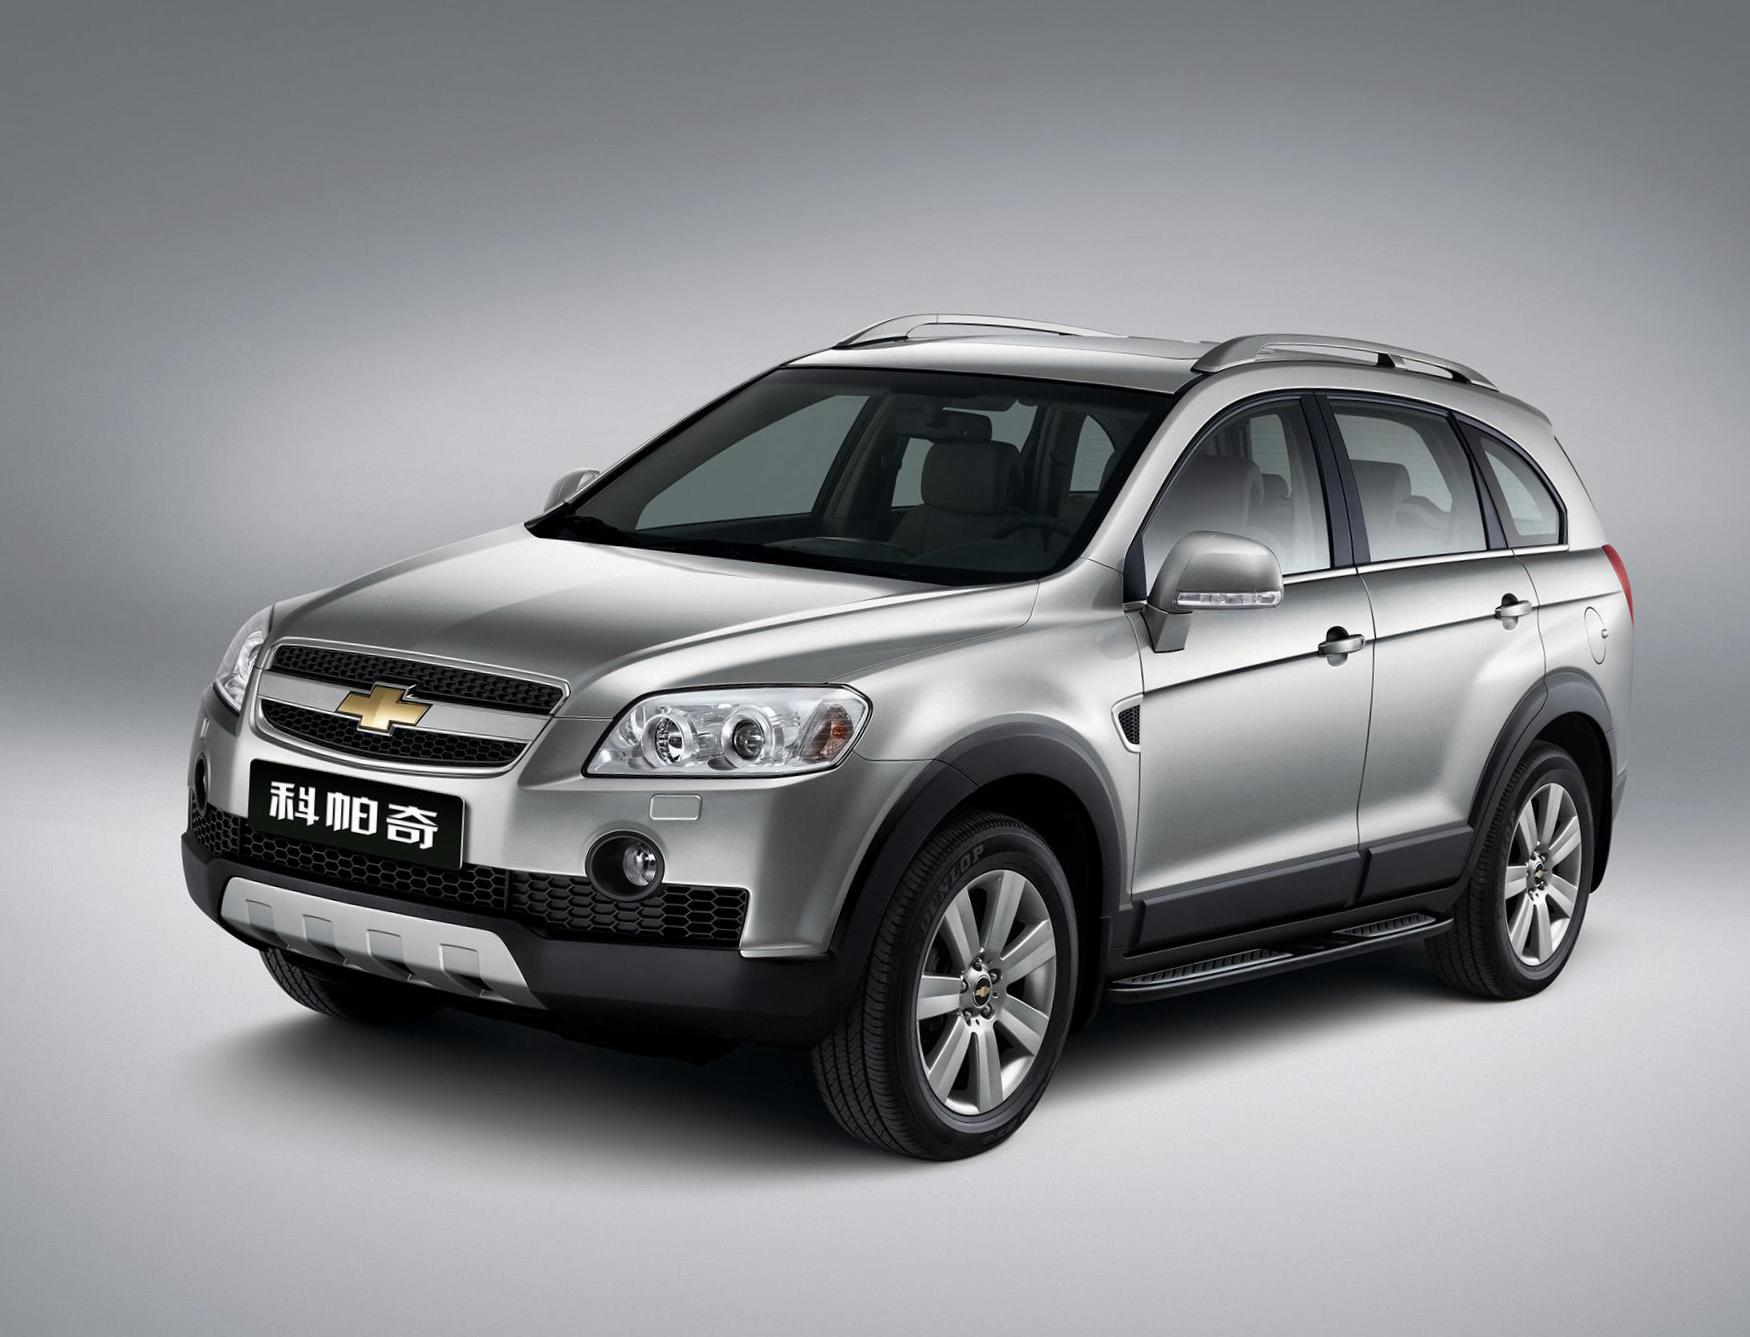 Captiva Chevrolet prices 2010